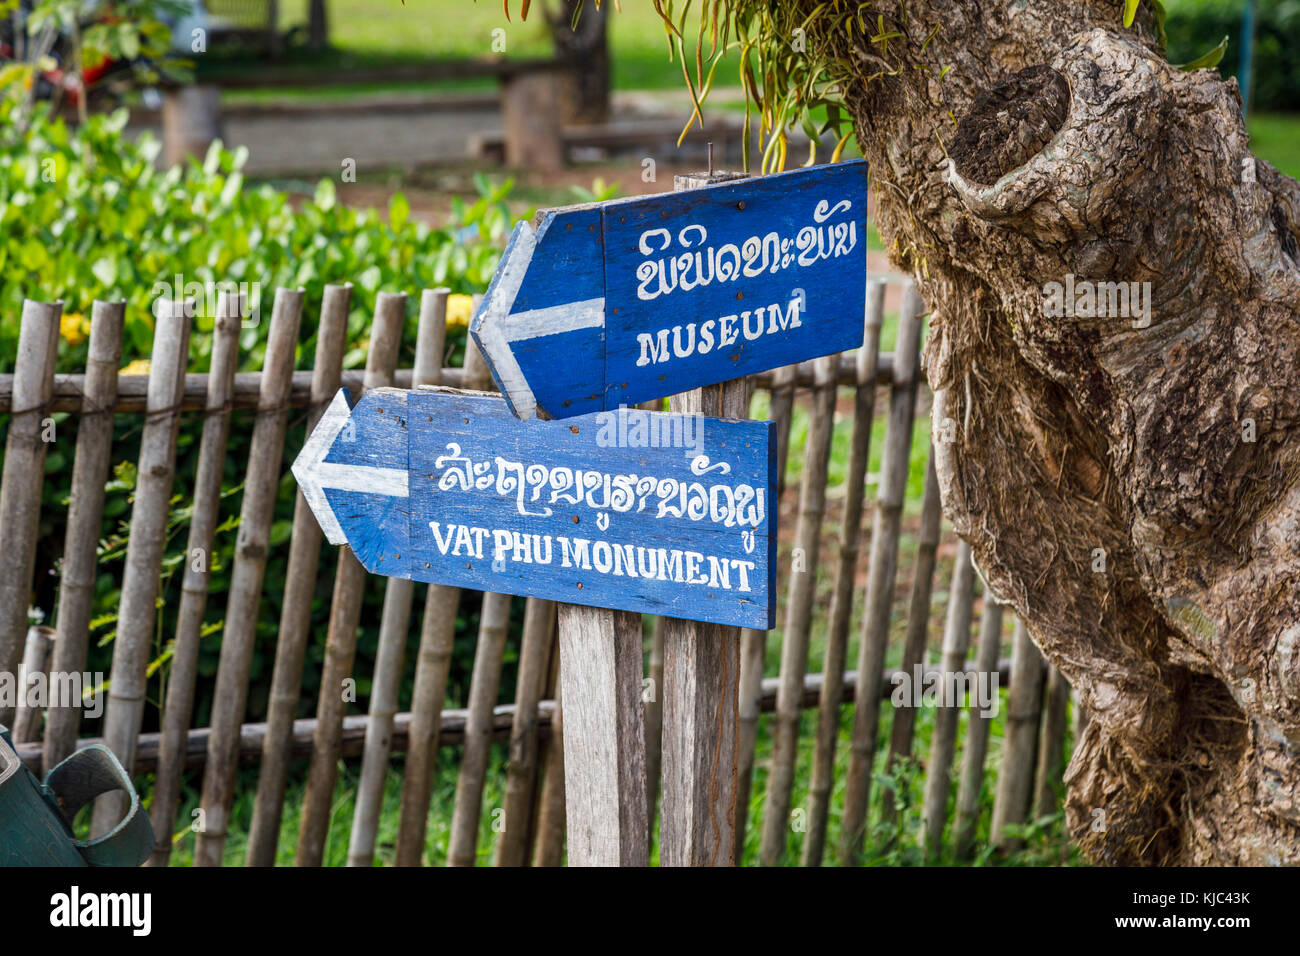 Entrance sign and directions to Monument and Museum at the pre-Angkorian Khmer Hindu temple of Wat Phou, Champasak - Stock Image